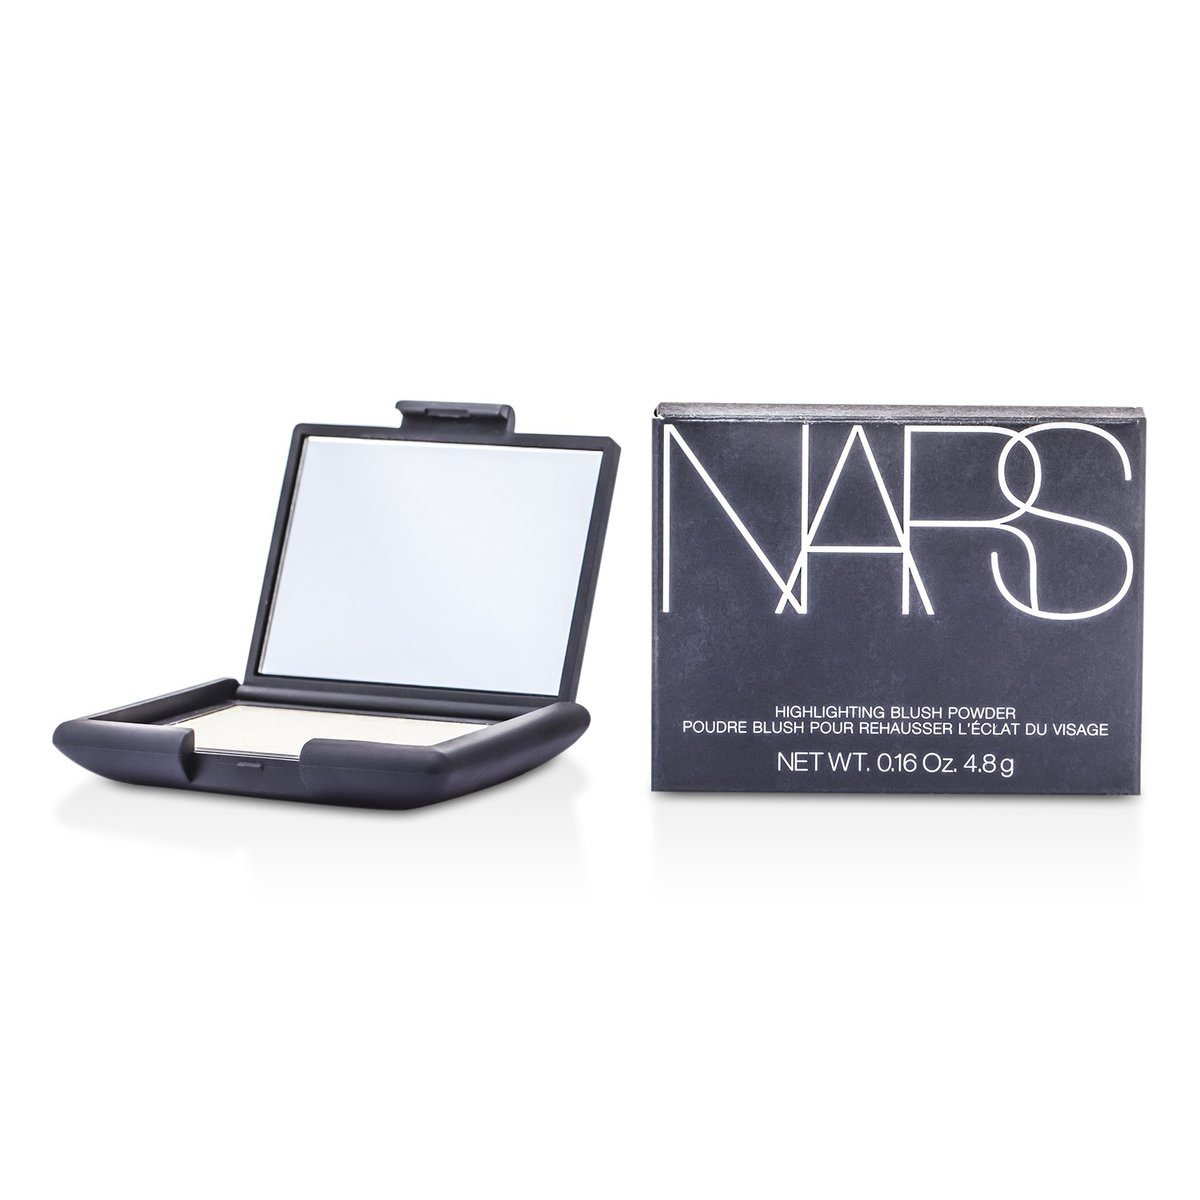 Nars Highlighting Blush Powder Albatross Parallel Import On Original Product Hktvmall Online Shopping